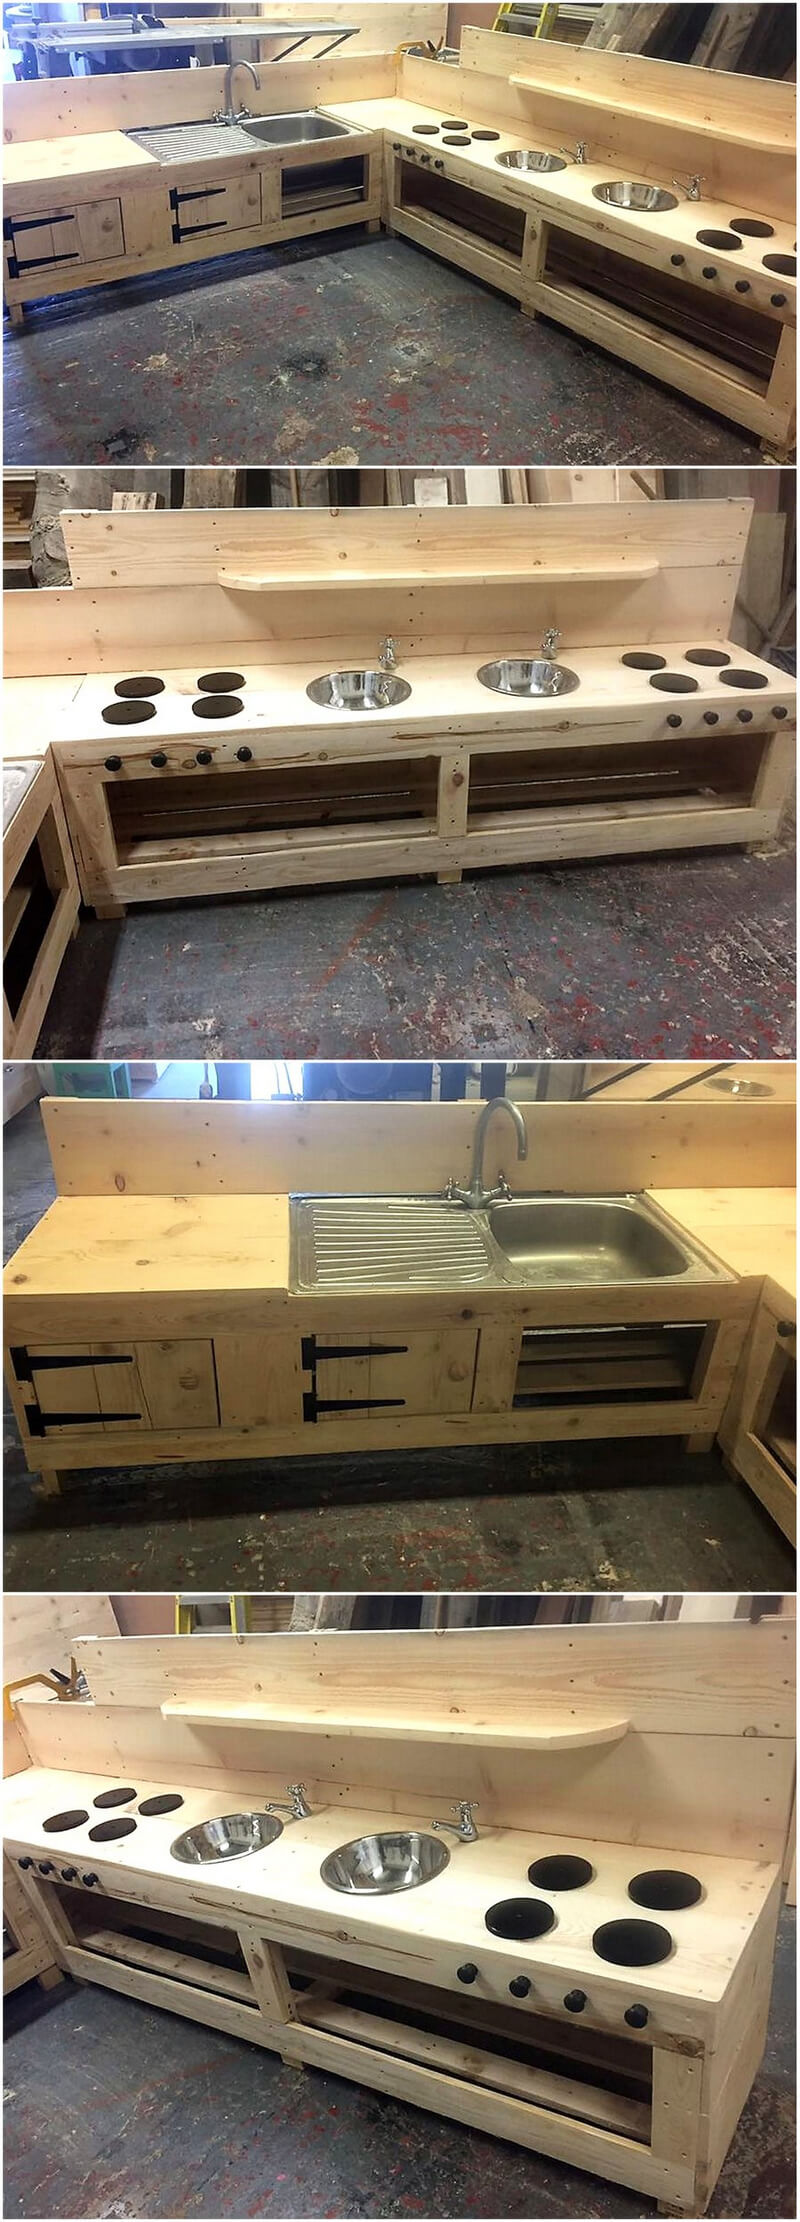 giant mud kitchen out of wooden pallets